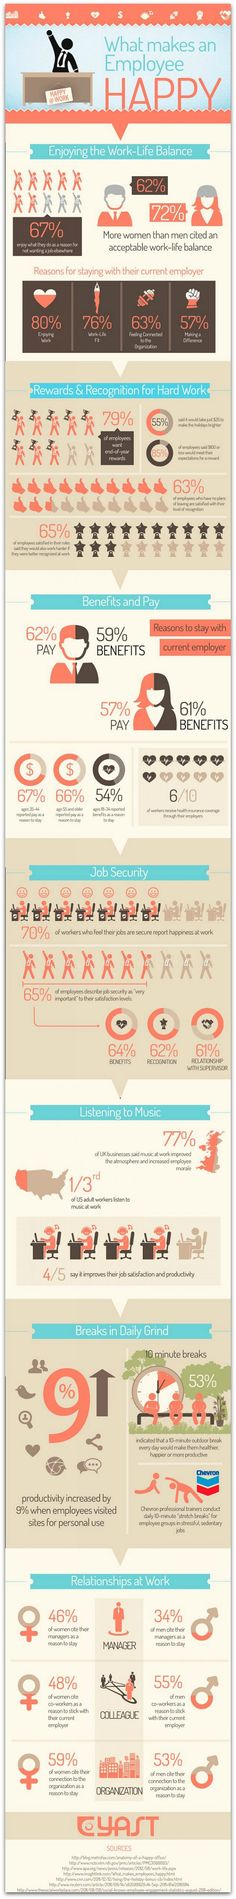 Infographic: How to keep employees happy at work | Articles | Main